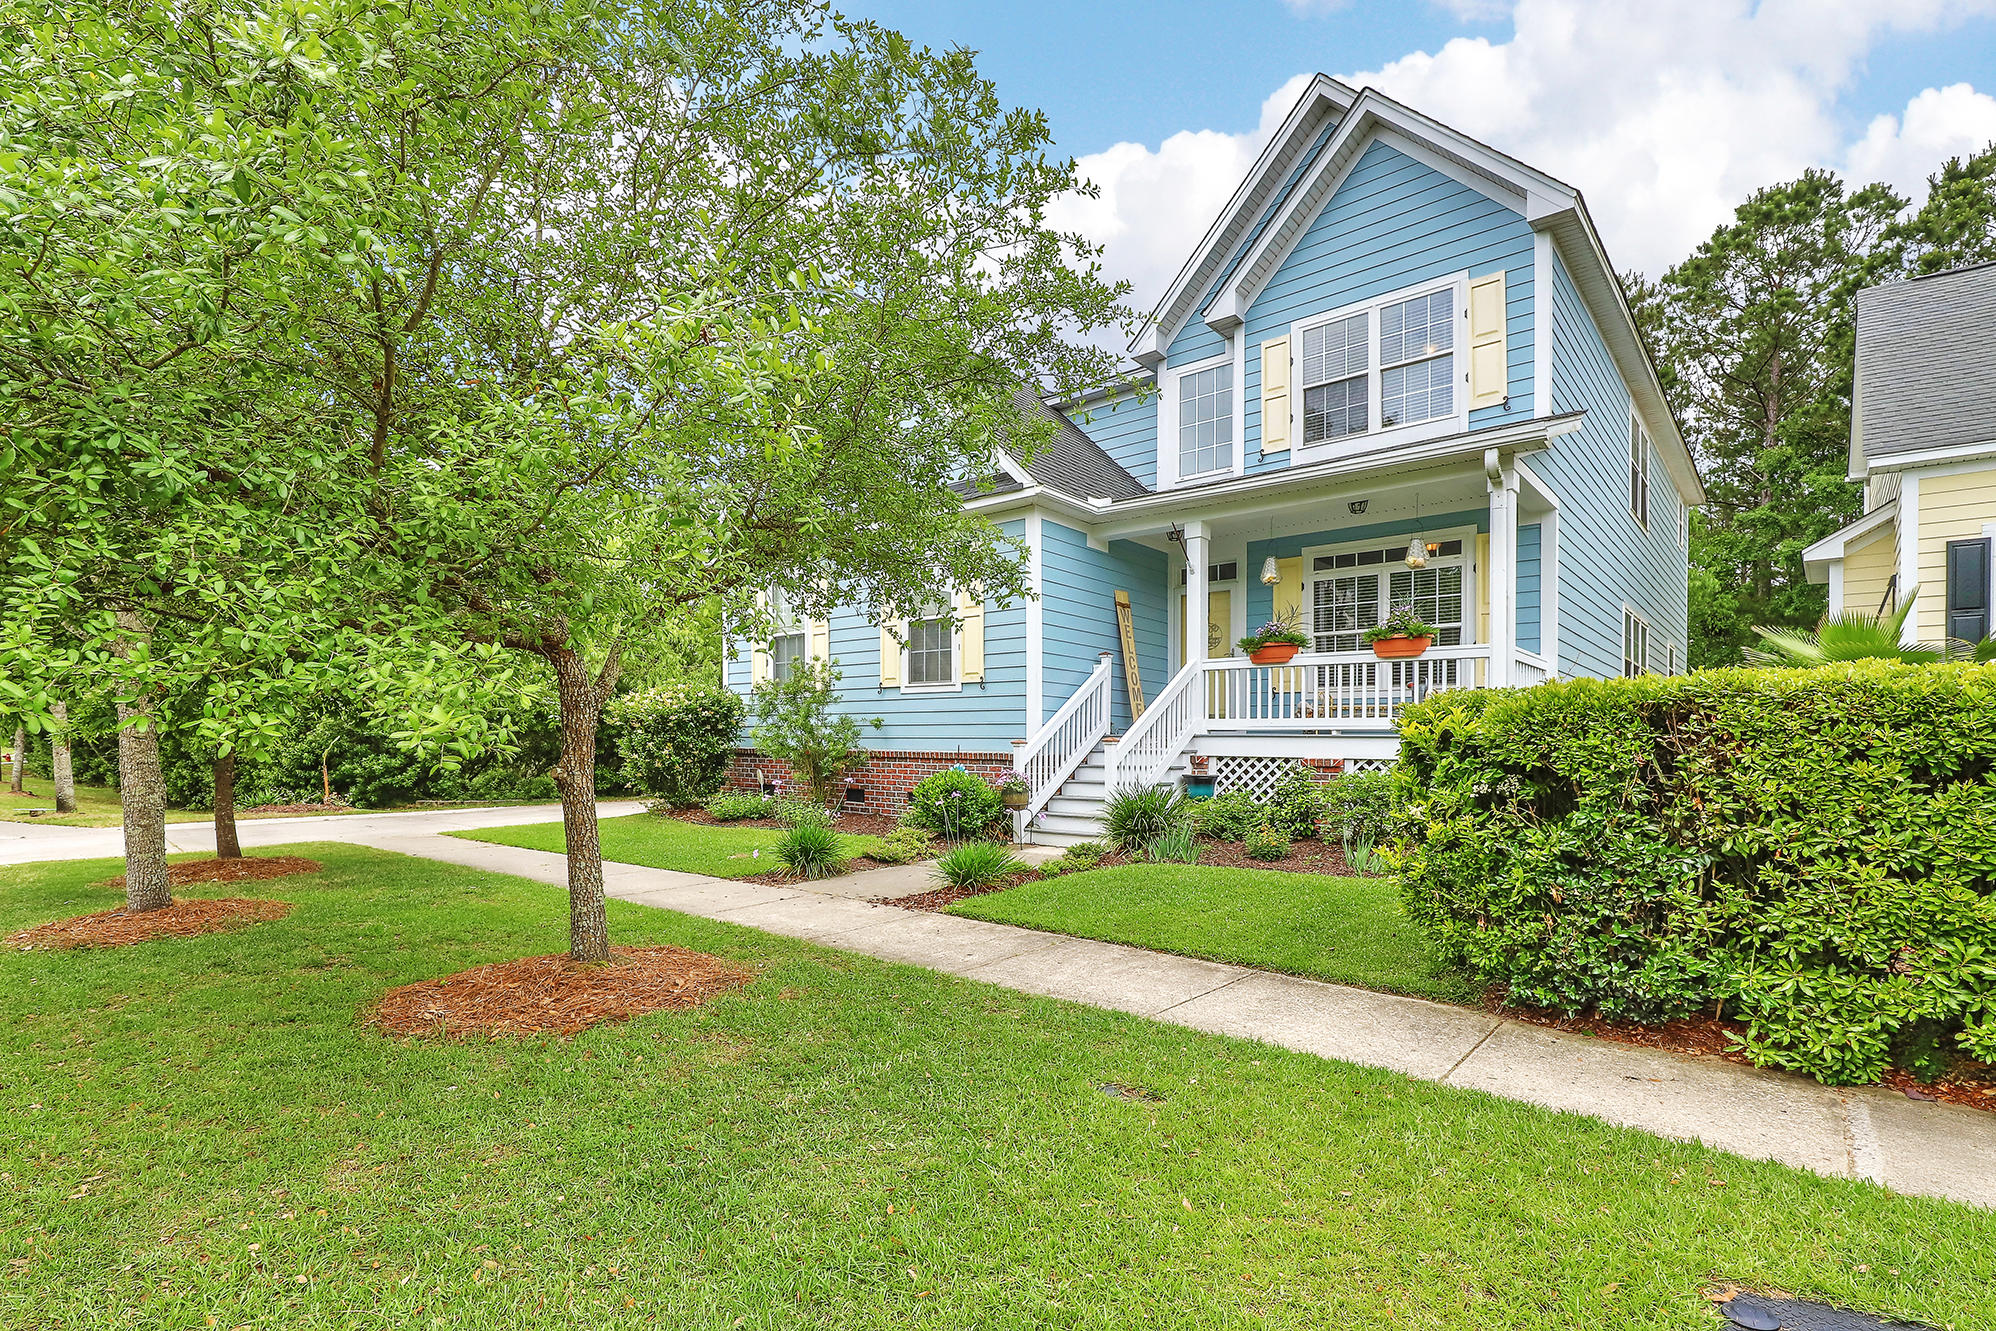 Rivertowne On The Wando Homes For Sale - 2182 Sandy Point Lane, Mount Pleasant, SC - 32